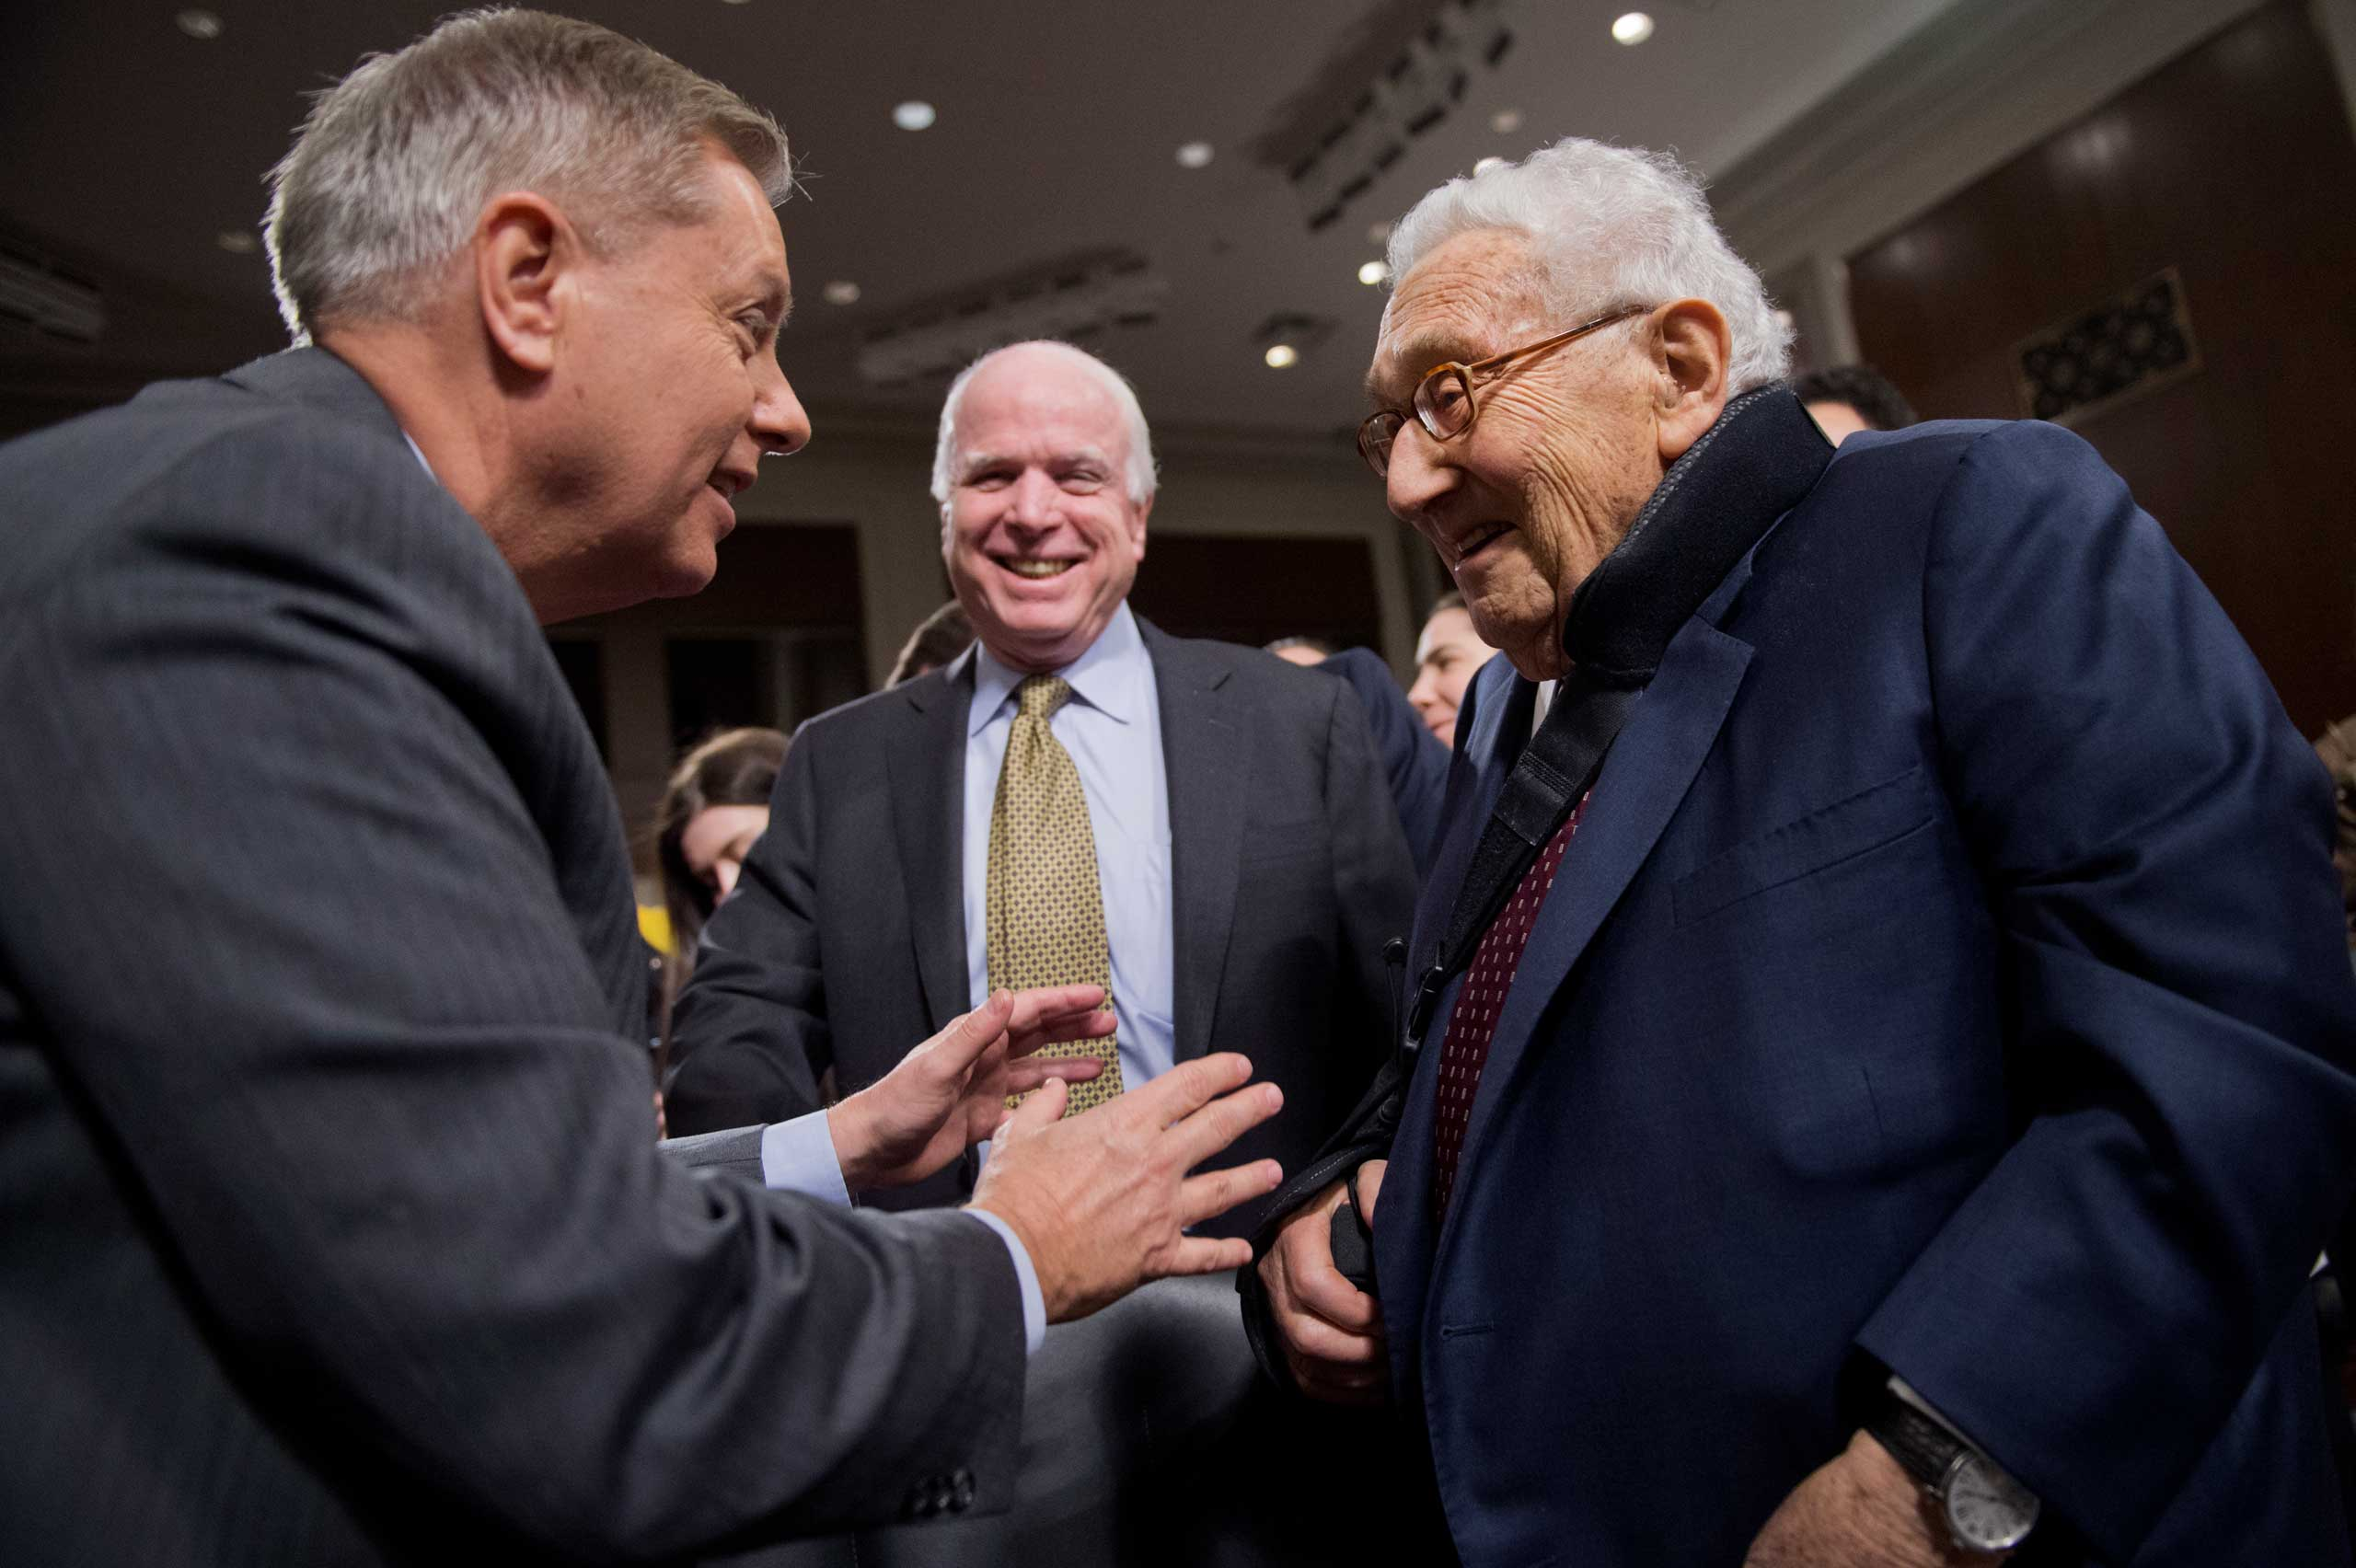 After Lieberman left the Senate in 2013, McCain and Graham, shown here greeting former Secretary of State Henry Kissinger, continued to work together.